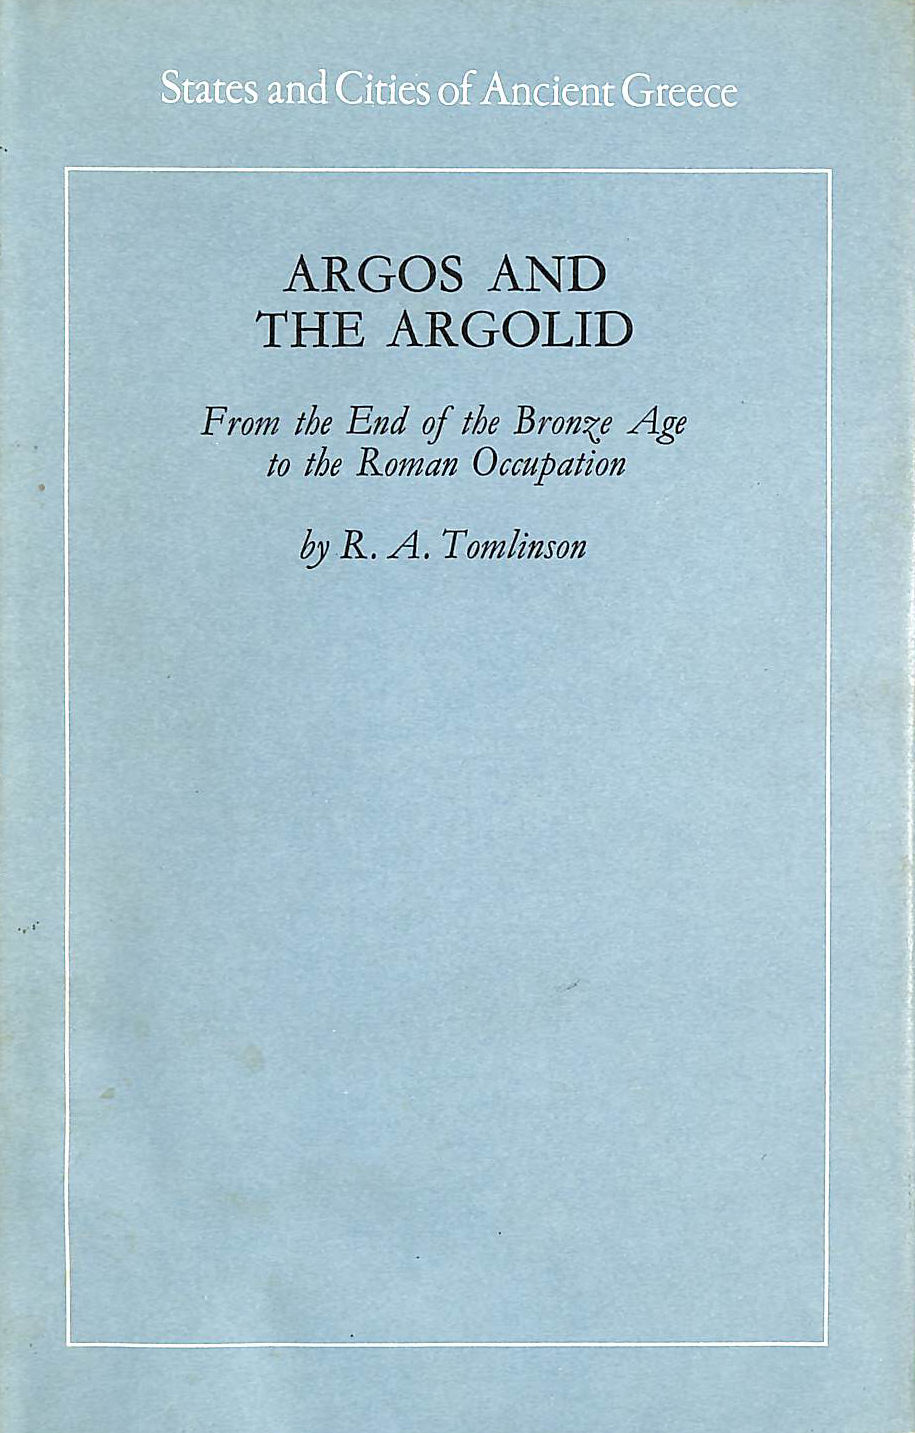 Image for Argos and the Argolid: From the End of the bronze Age to the Roman Occupation